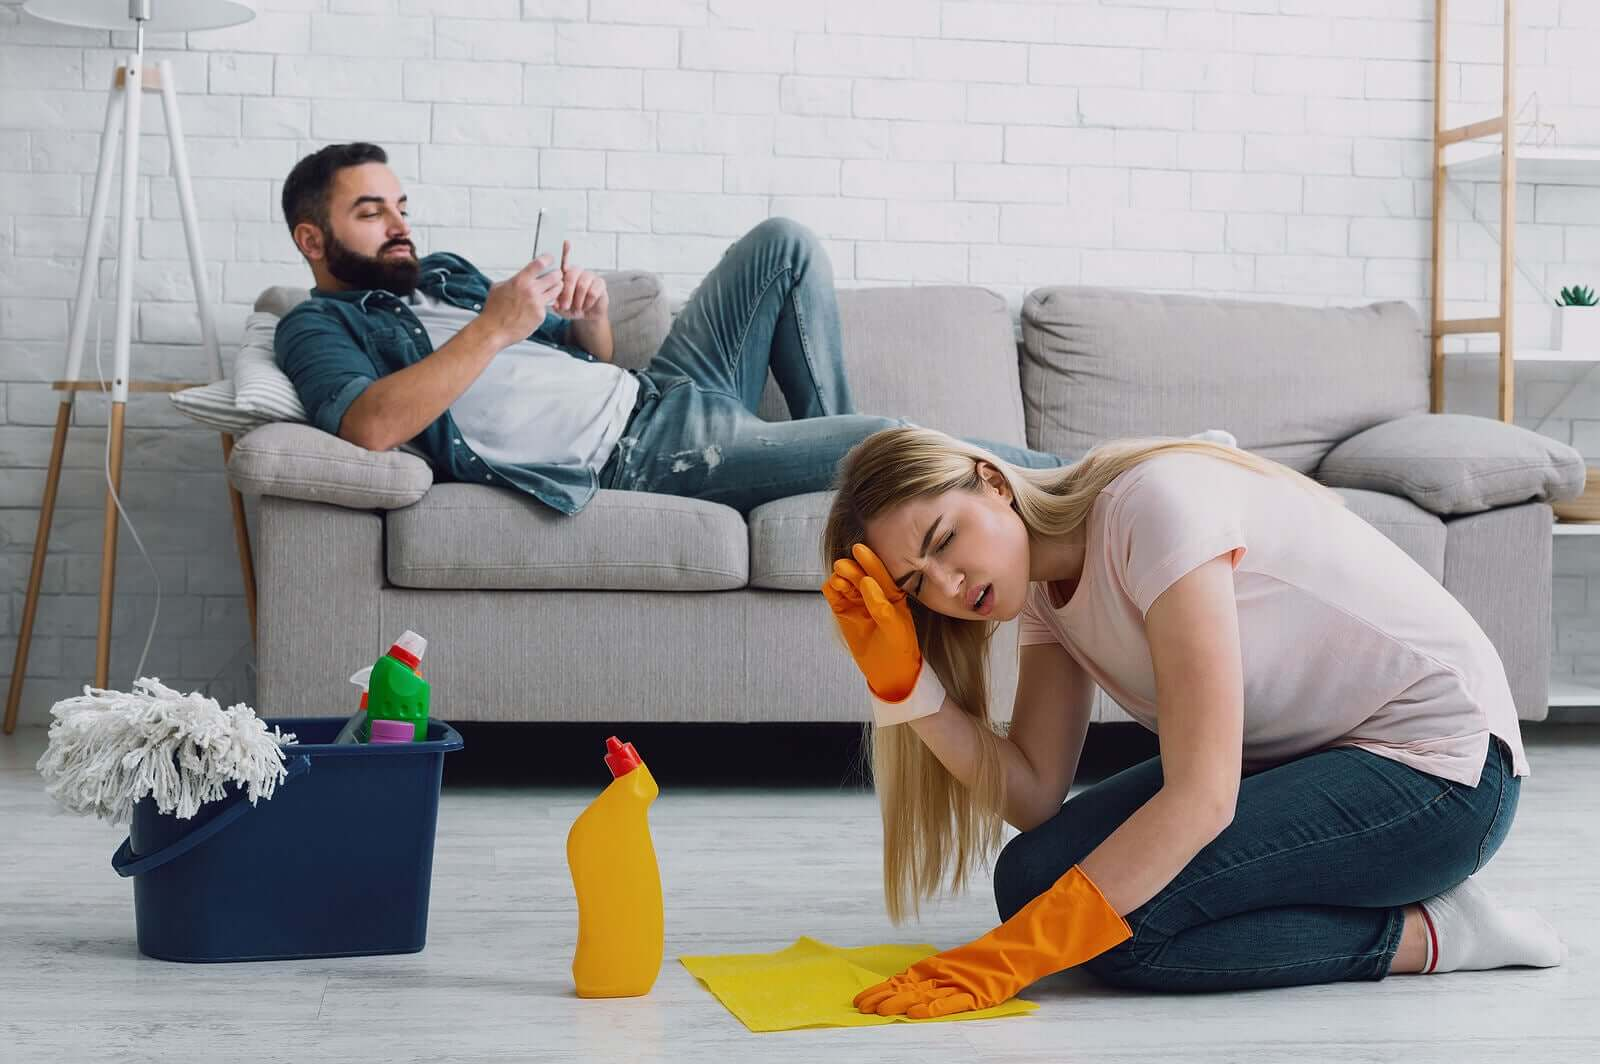 a woman looking angry as she cleans the floor and her husband relaxes on the couch.